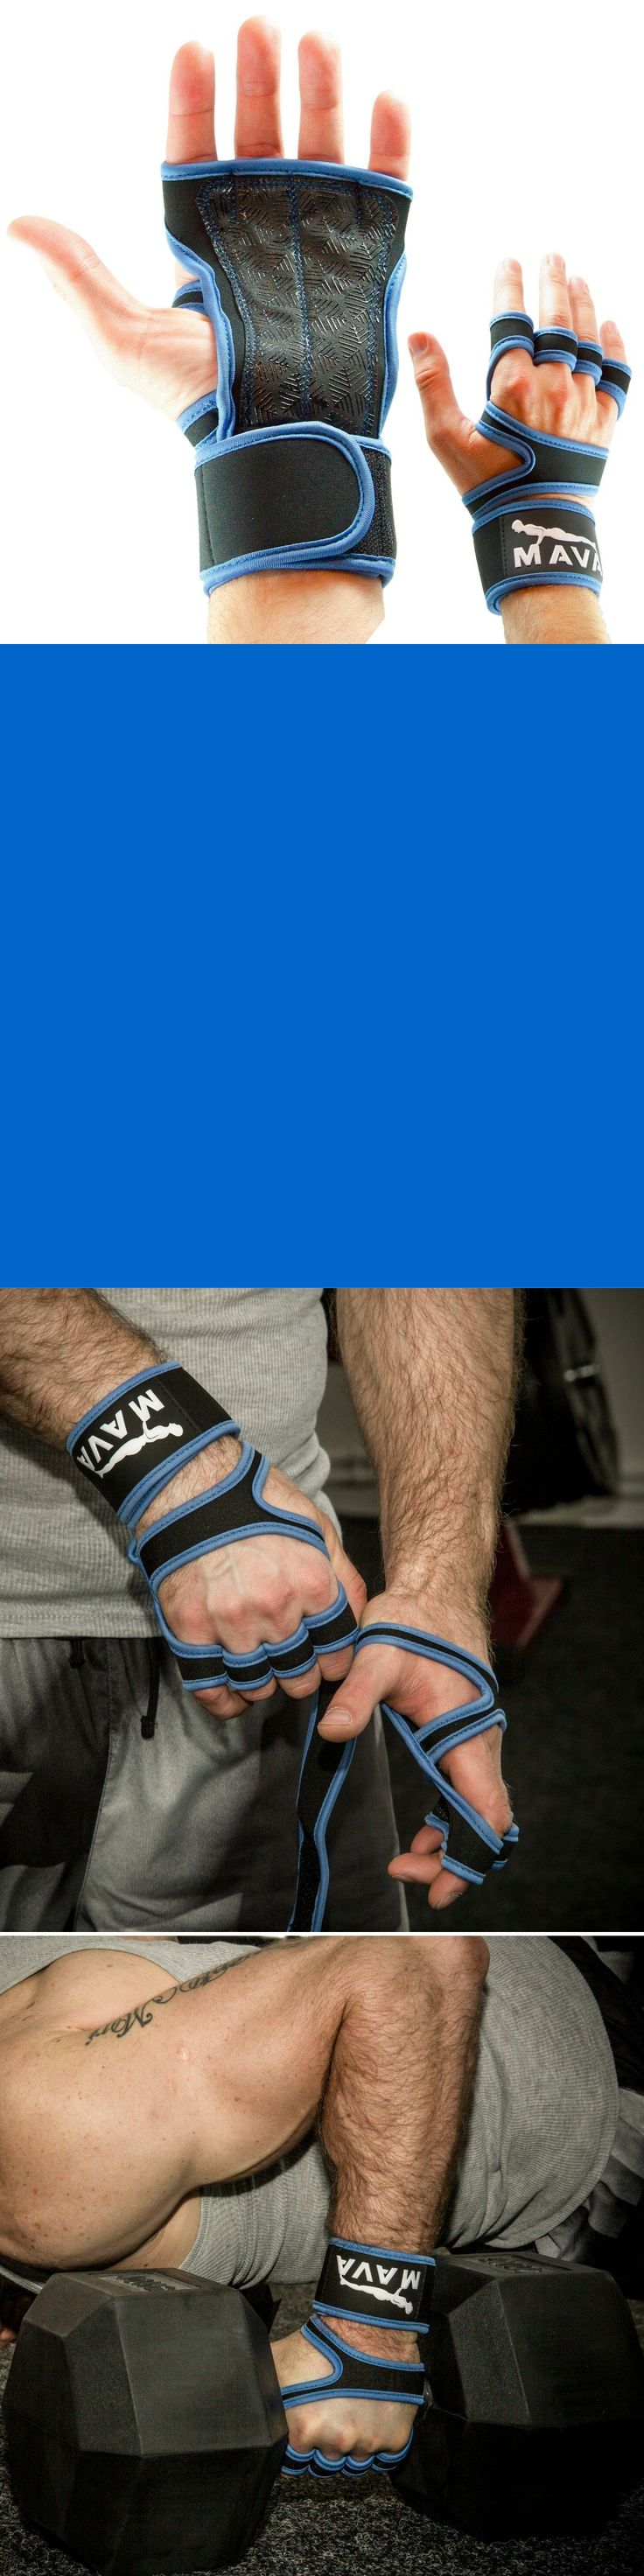 Gloves Straps and Hooks 179820: Mava Sports Kettlebell Gloves For Gym Workouts - Cross Training Hand Wrap, Bar -> BUY IT NOW ONLY: $43.69 on eBay!